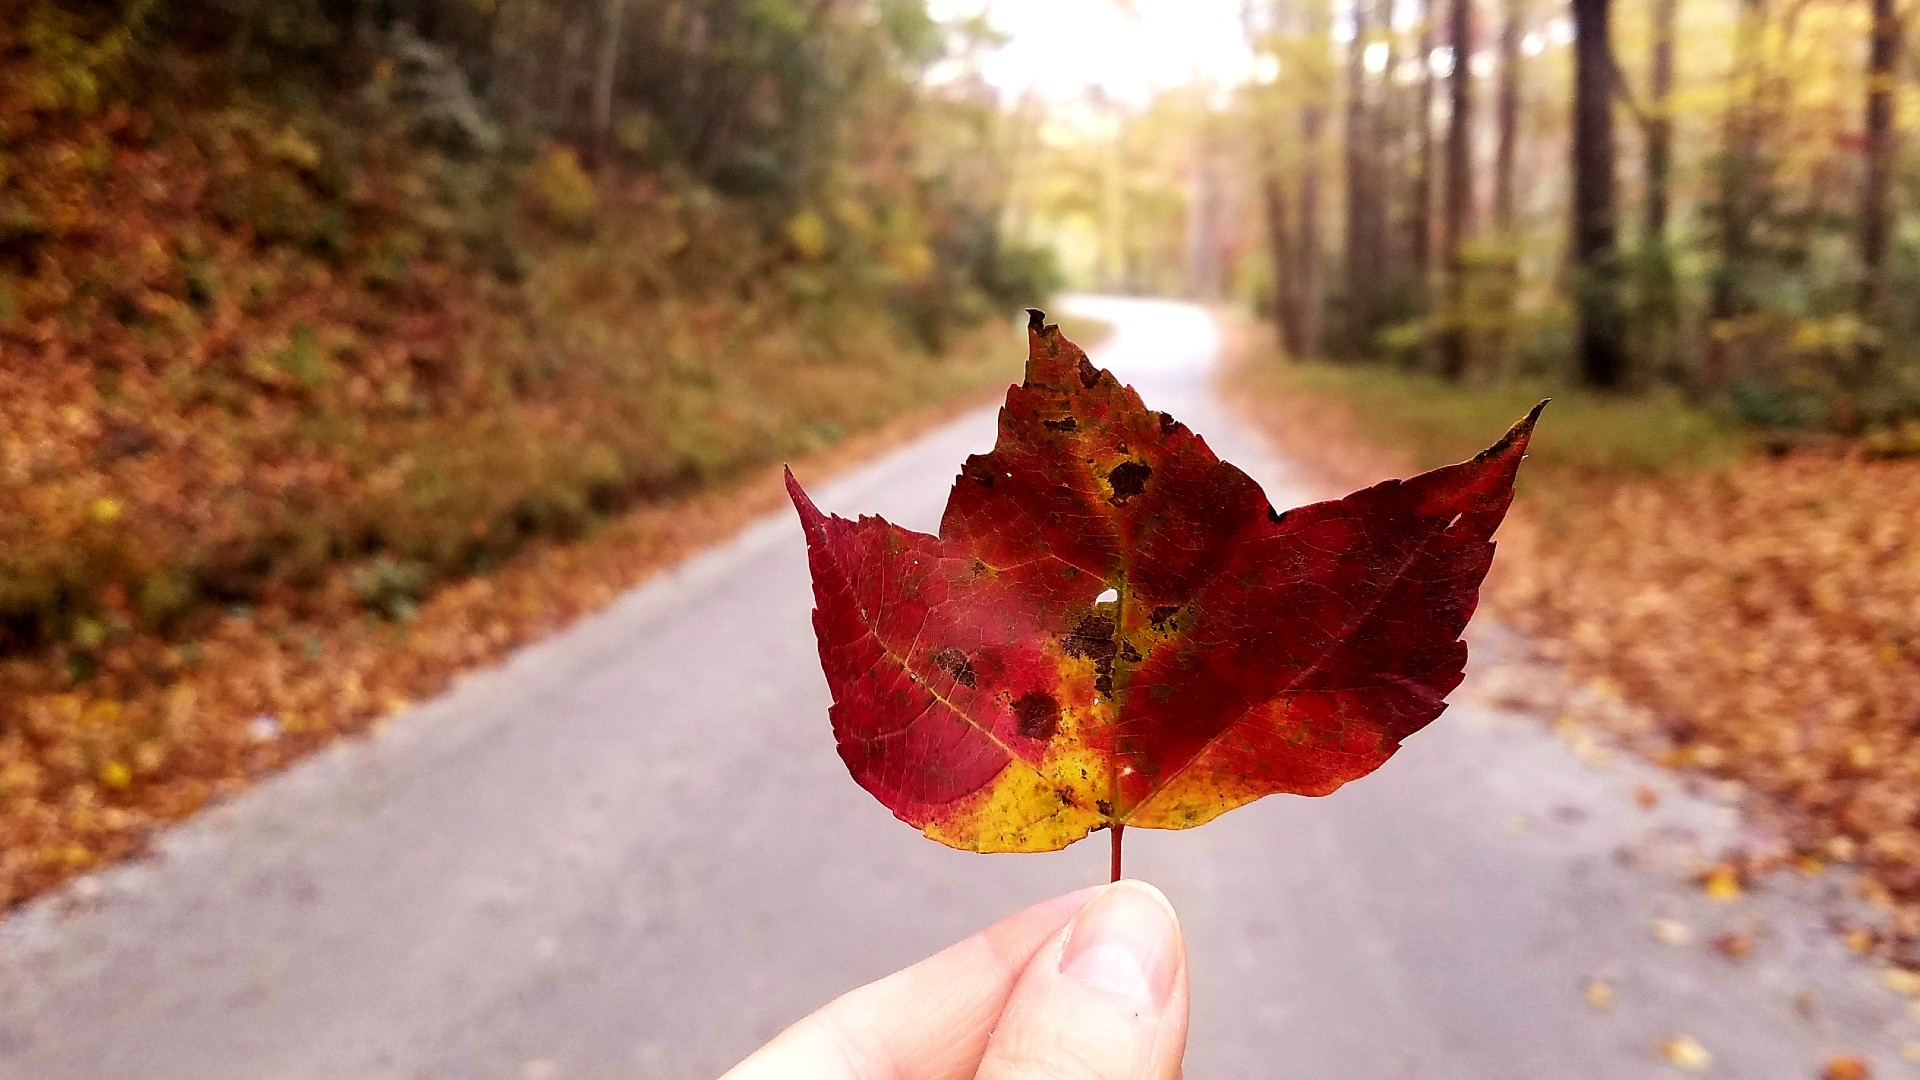 Fingers holding maple leaf with a leaf-covered forest road in the background